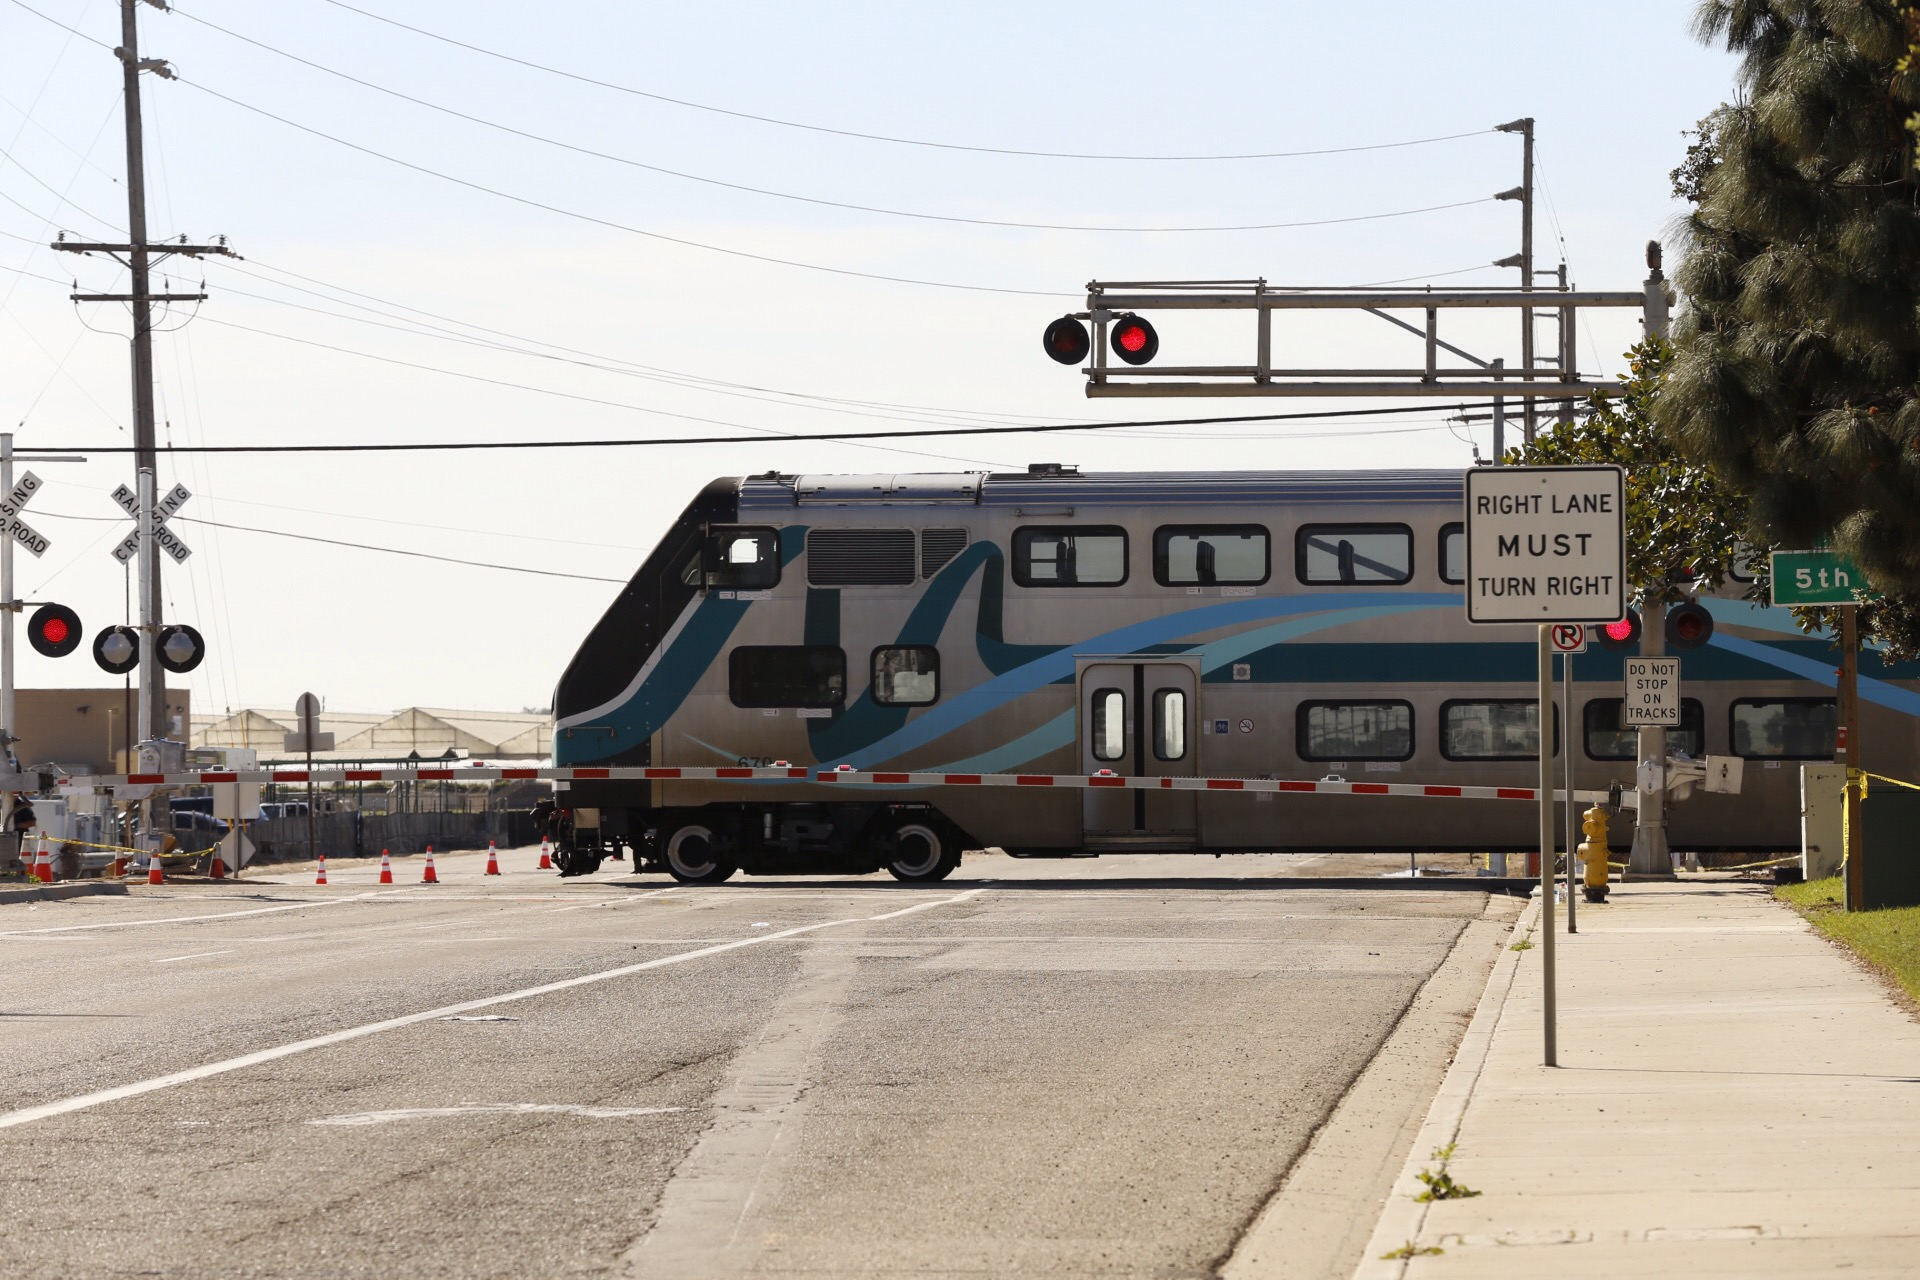 OXNARD, CA FEBRUARY 125, 2015 - A metro link train moves through the Rice Avenue crossing Wednesday